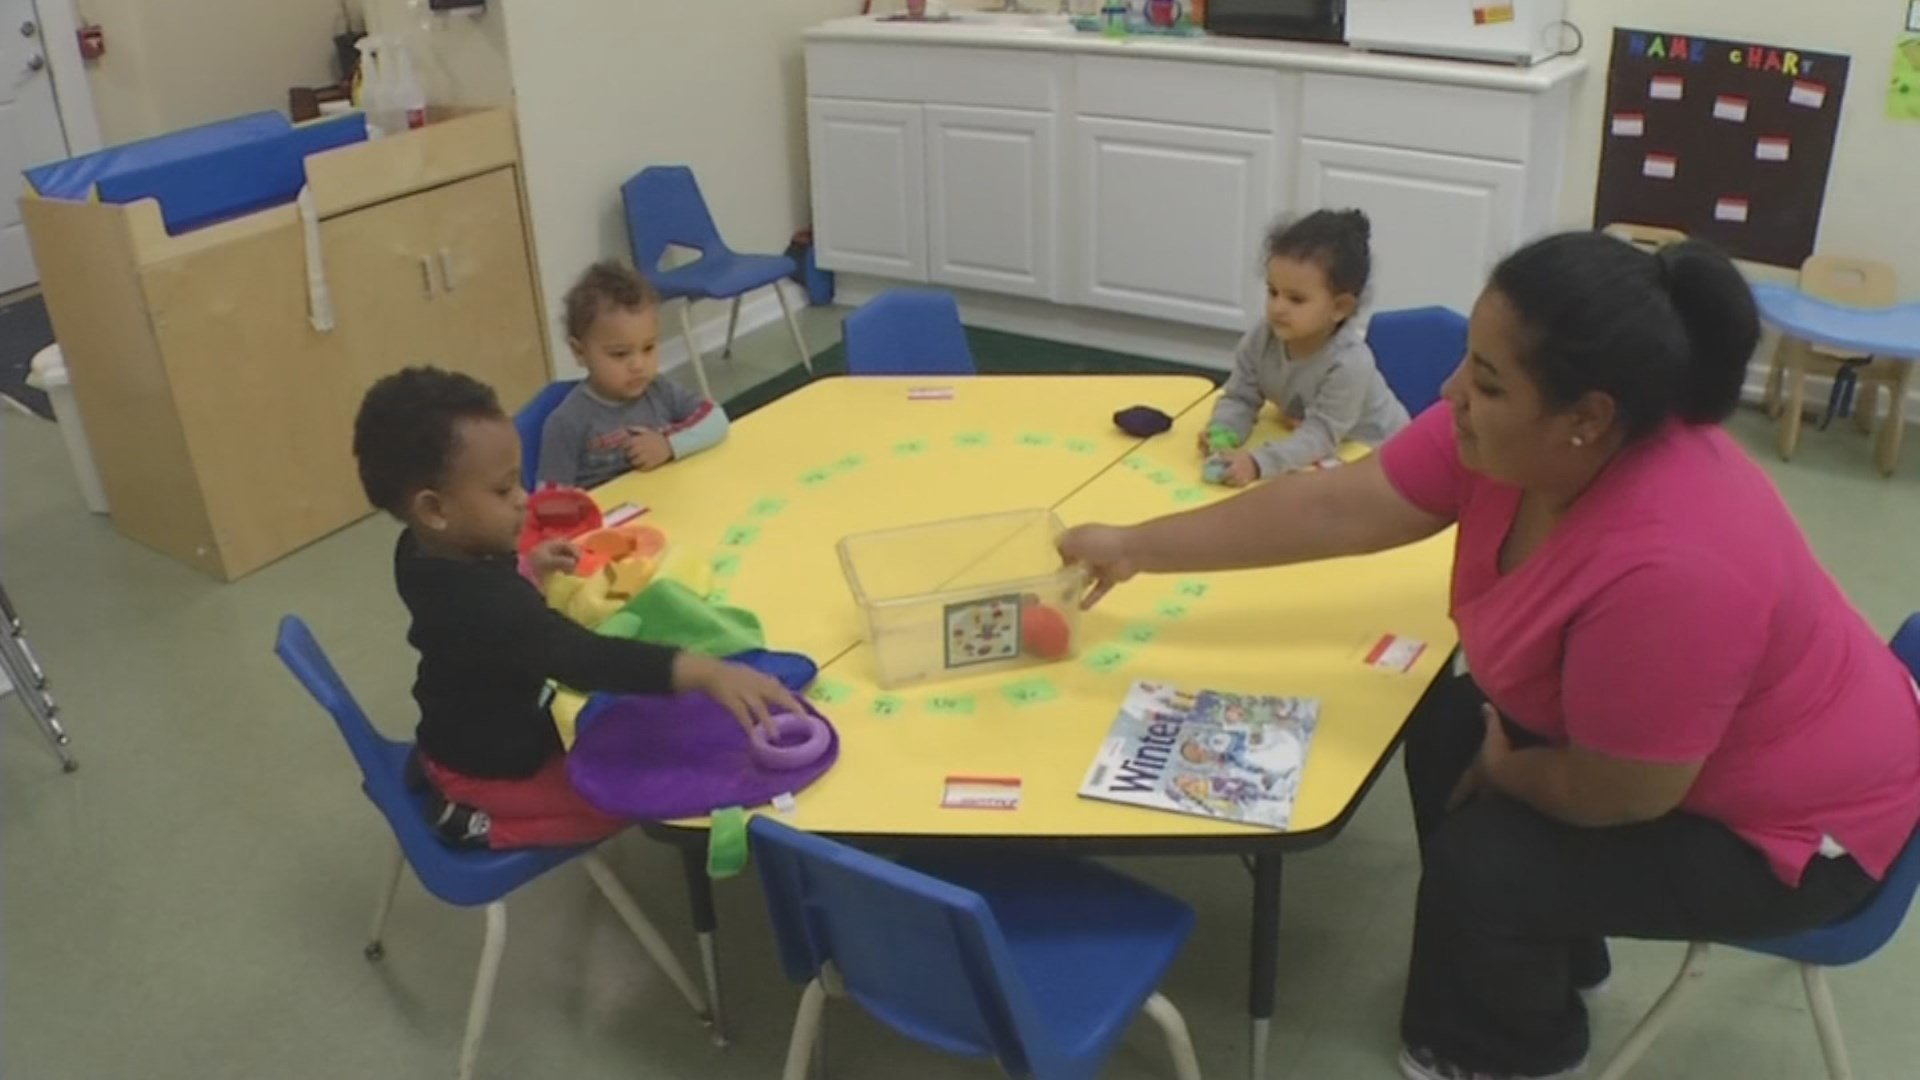 Child Care Aware of America is leading the first active shooter response training aimed specifically at daycare providers for infants, toddlers and young children. (KCTV5)